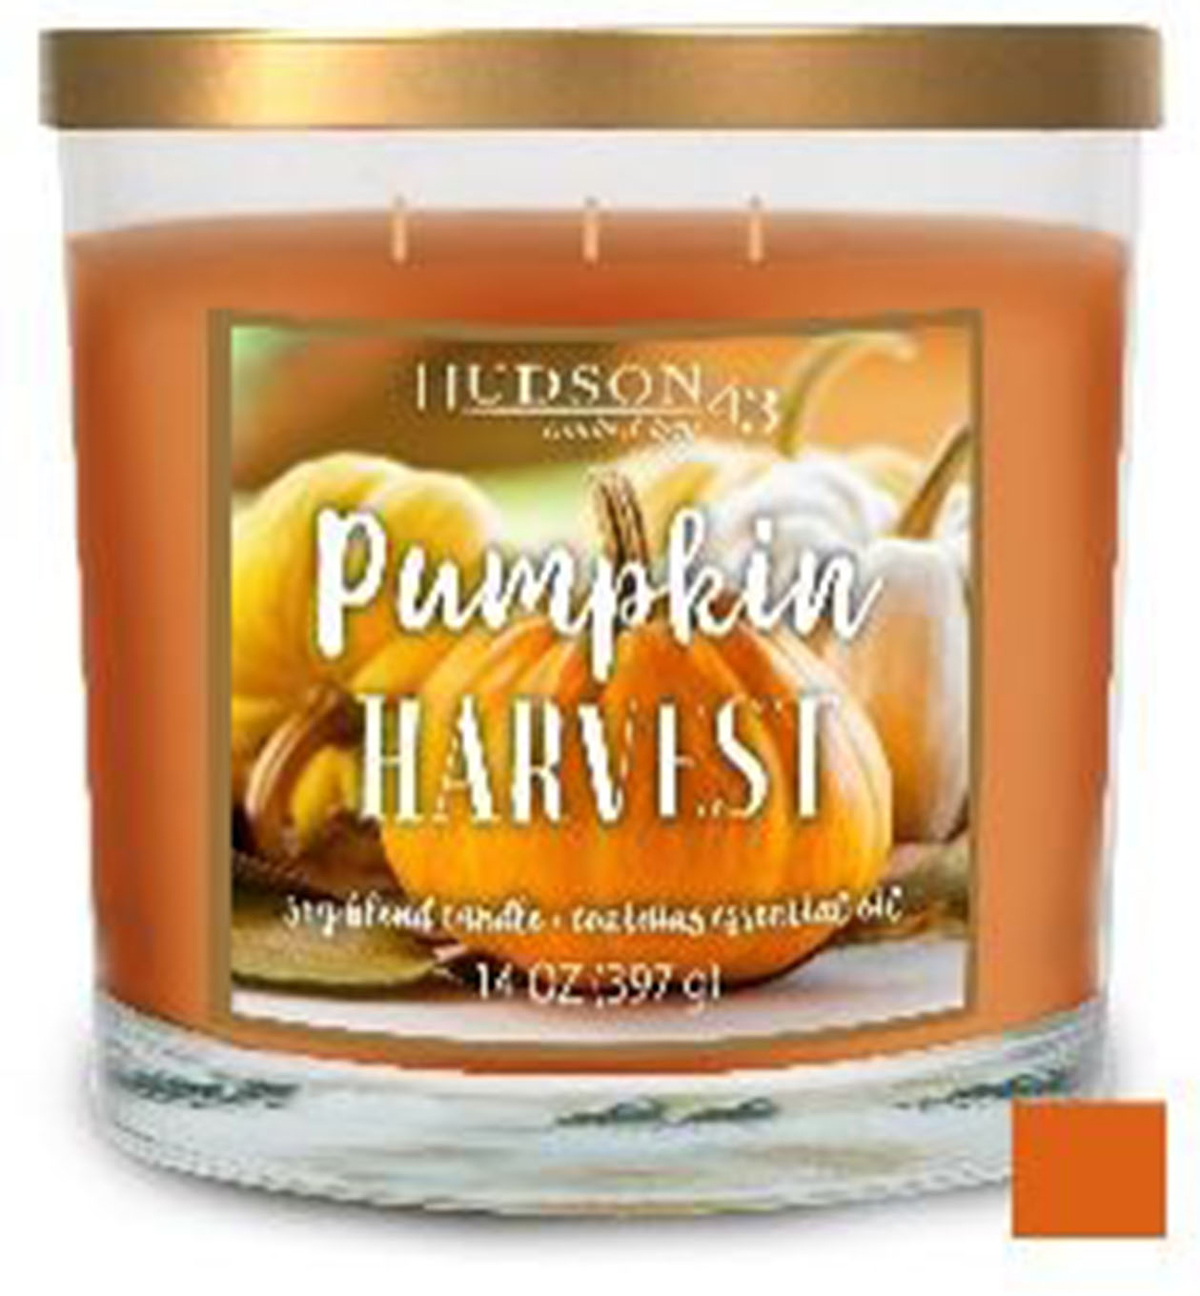 Hudson 43 Fall 14 oz. 3-wick Pumpkin Harvest Candle